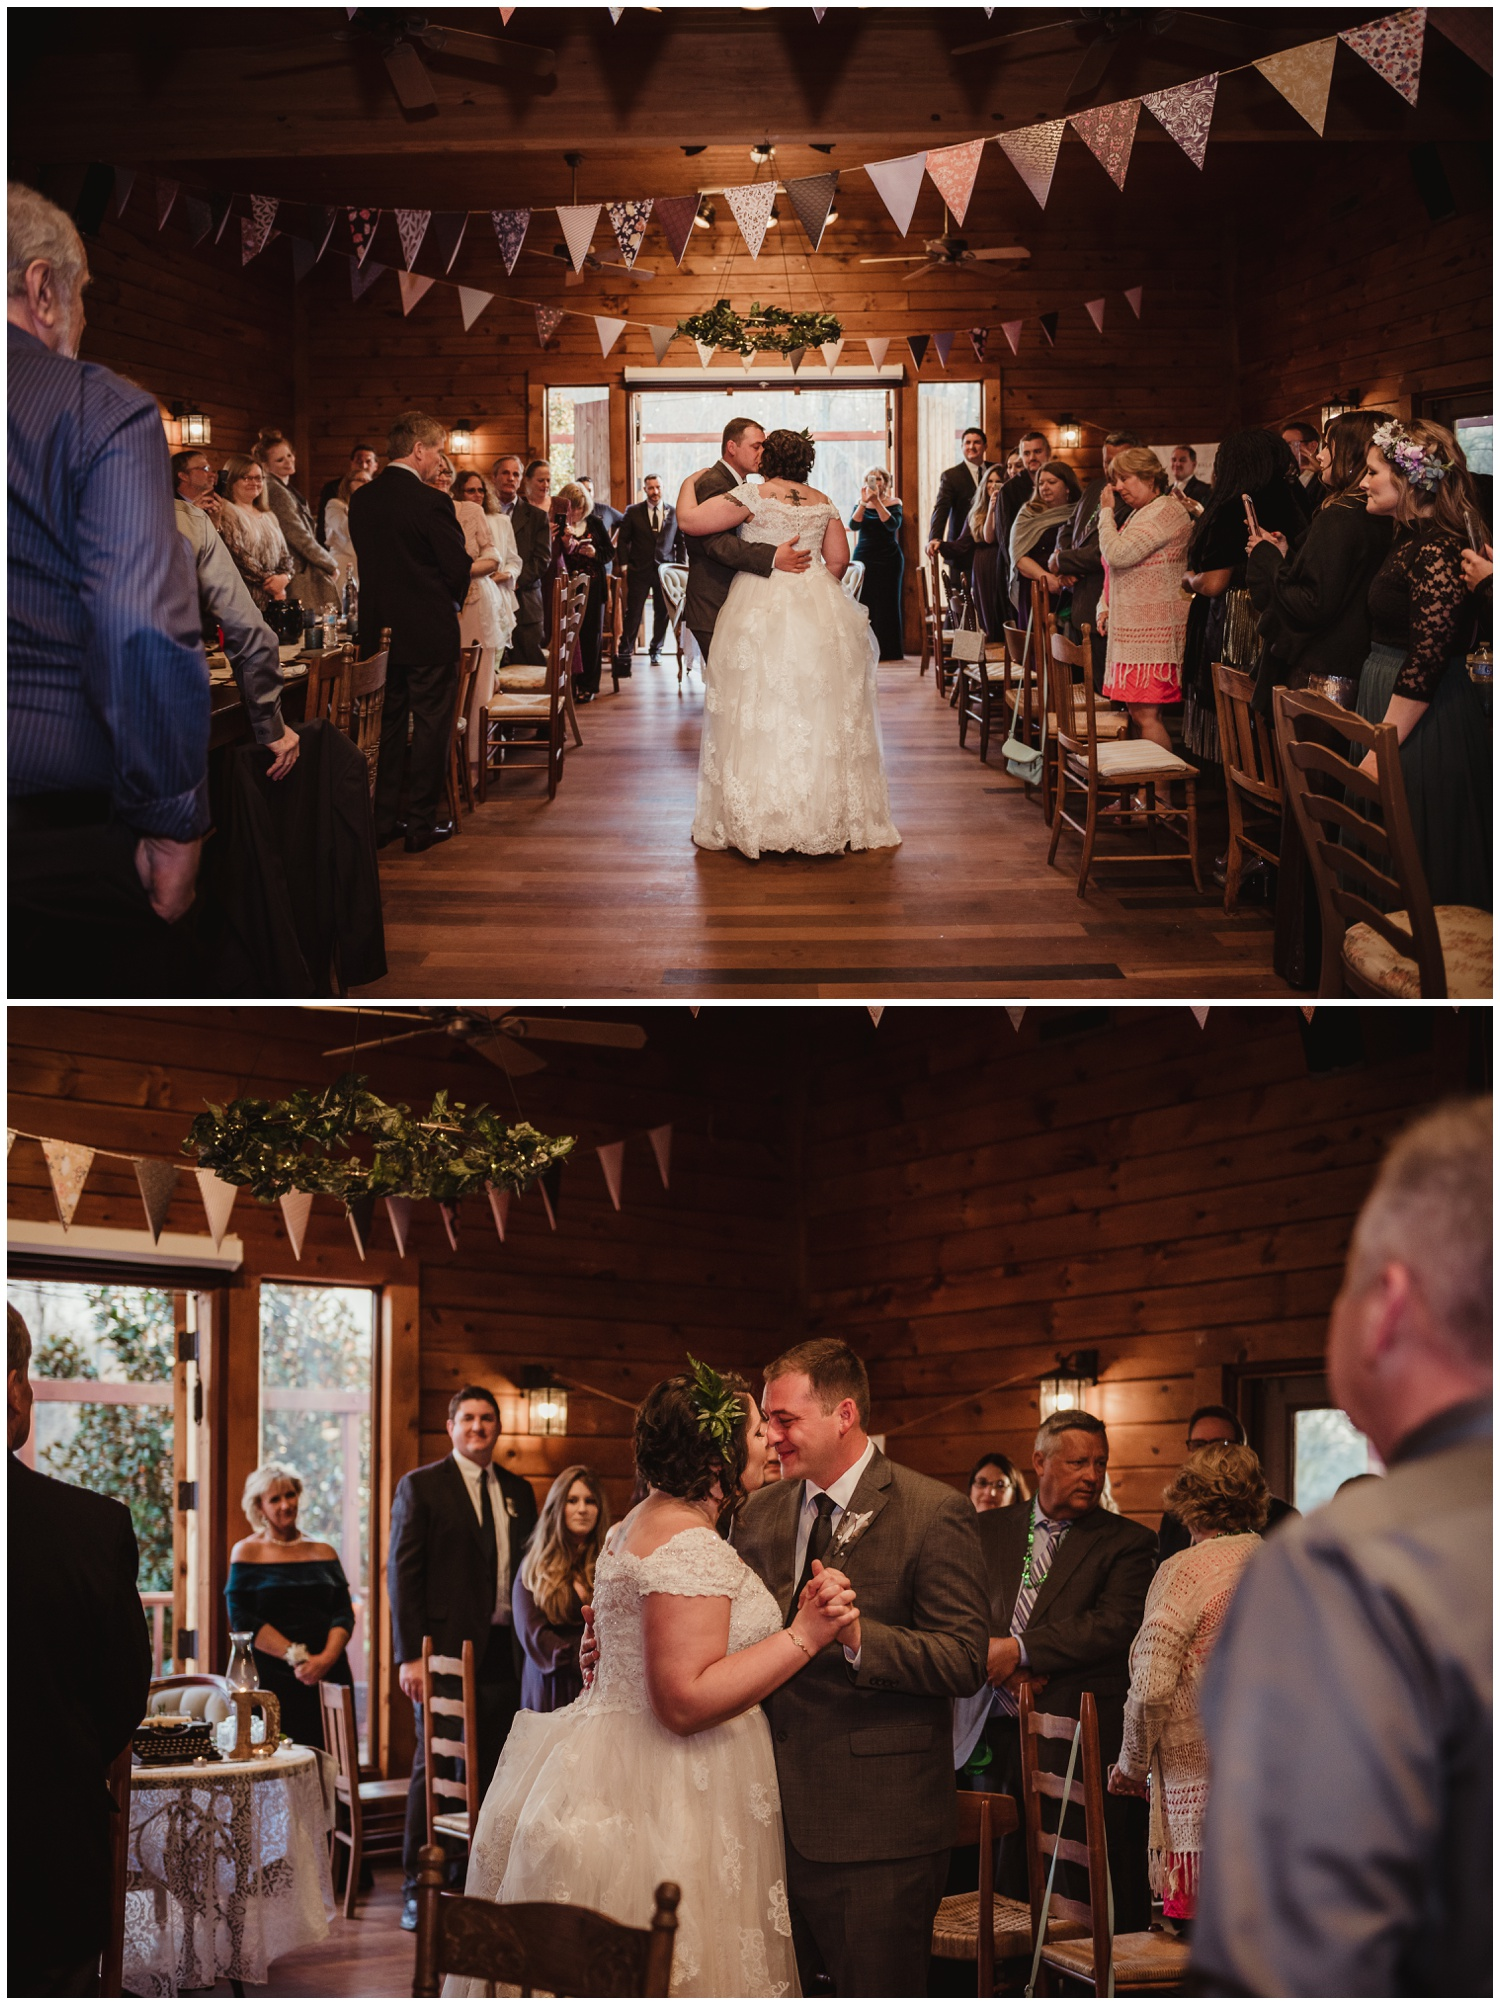 The bride and groom have their first dance on their wedding day at the Barn at Valhalla in Chapel Hill, taken by Rose Trail Images.